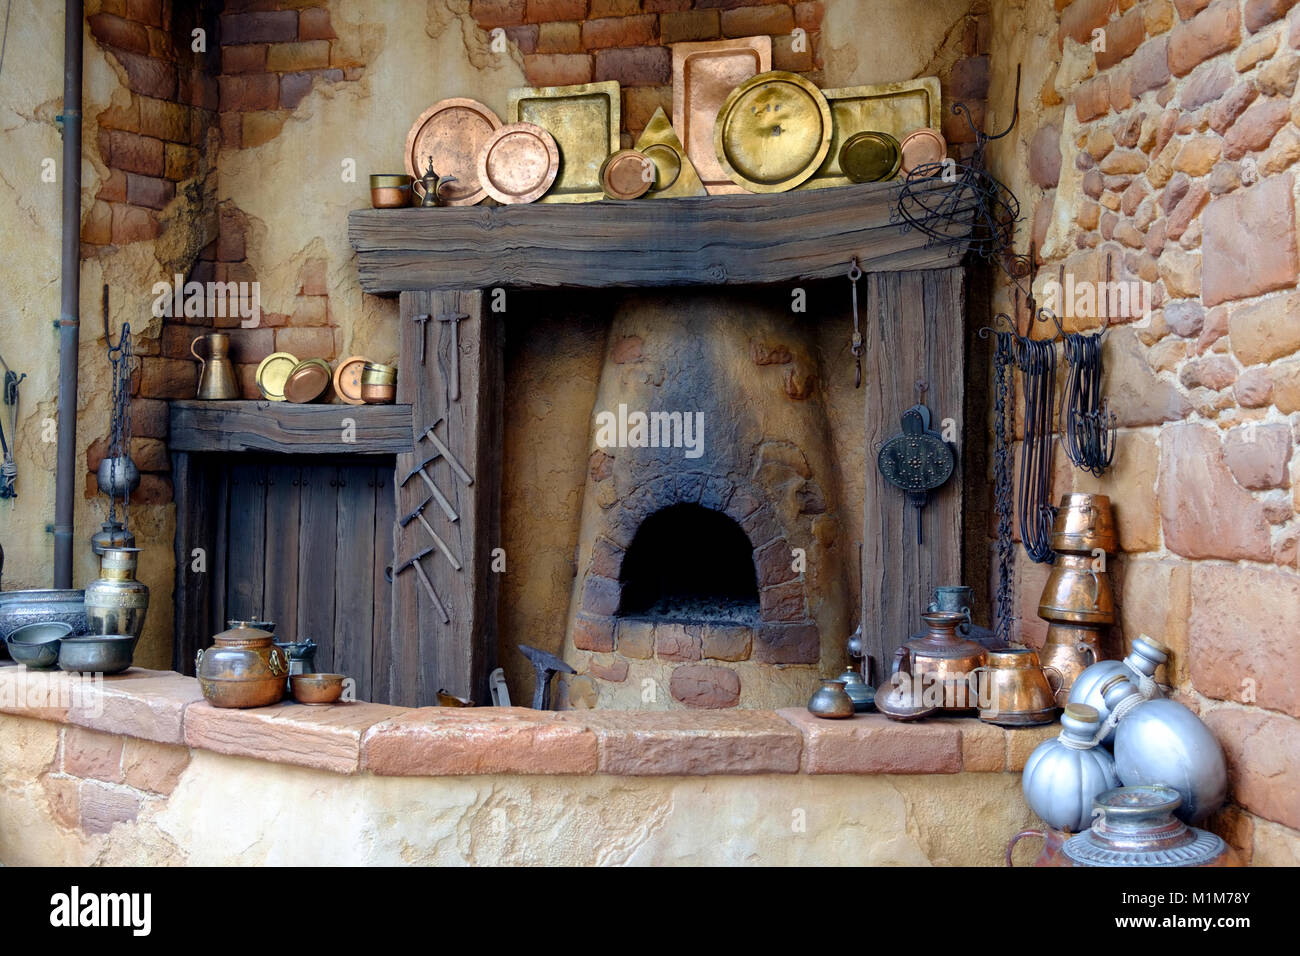 Old Kitchen Hearth With Copper Pots Pans And Platters And